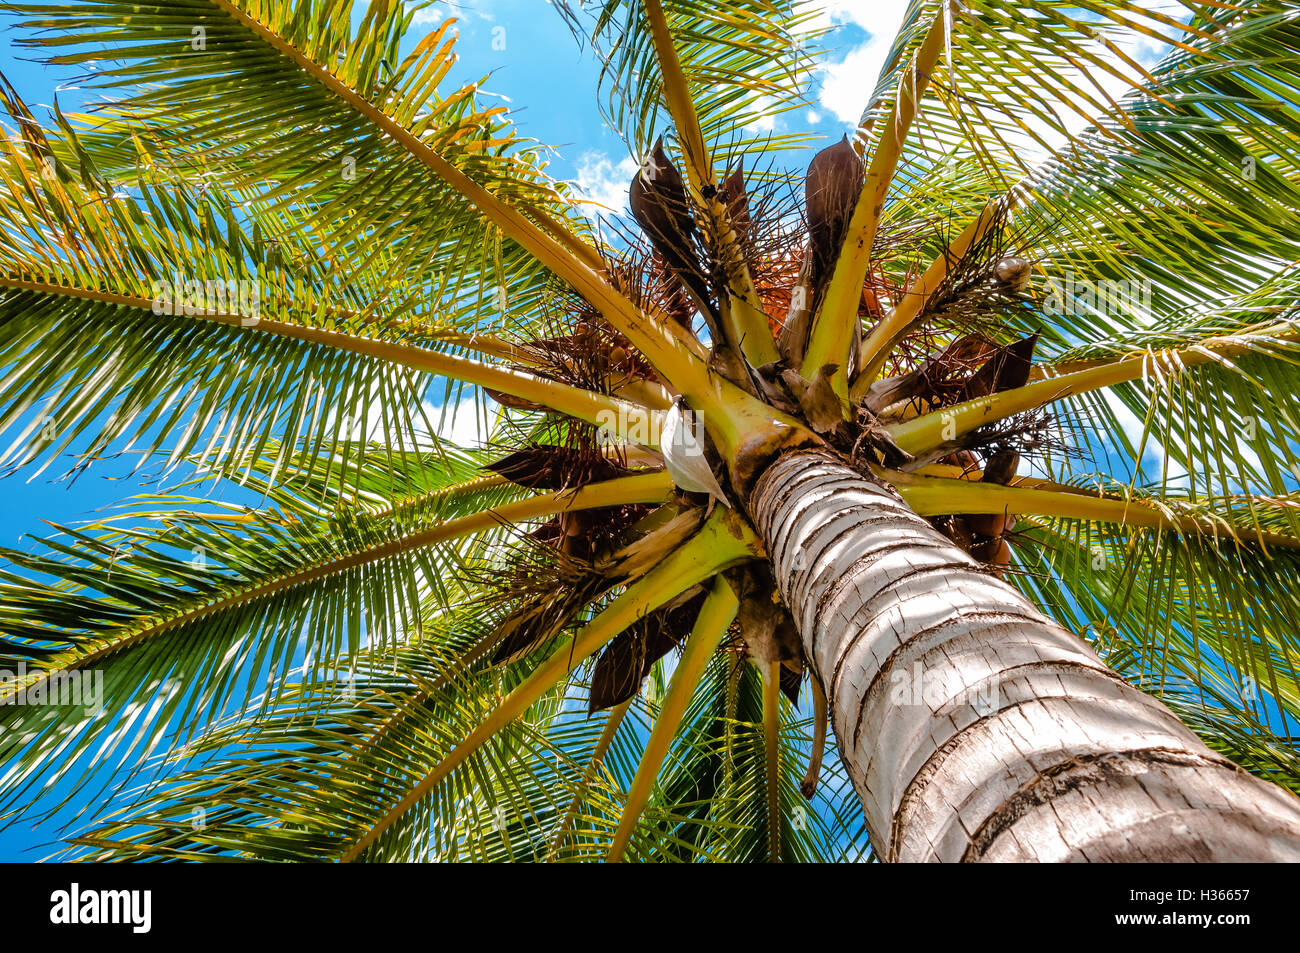 Palm tree viewed from below upwards high above - Stock Image